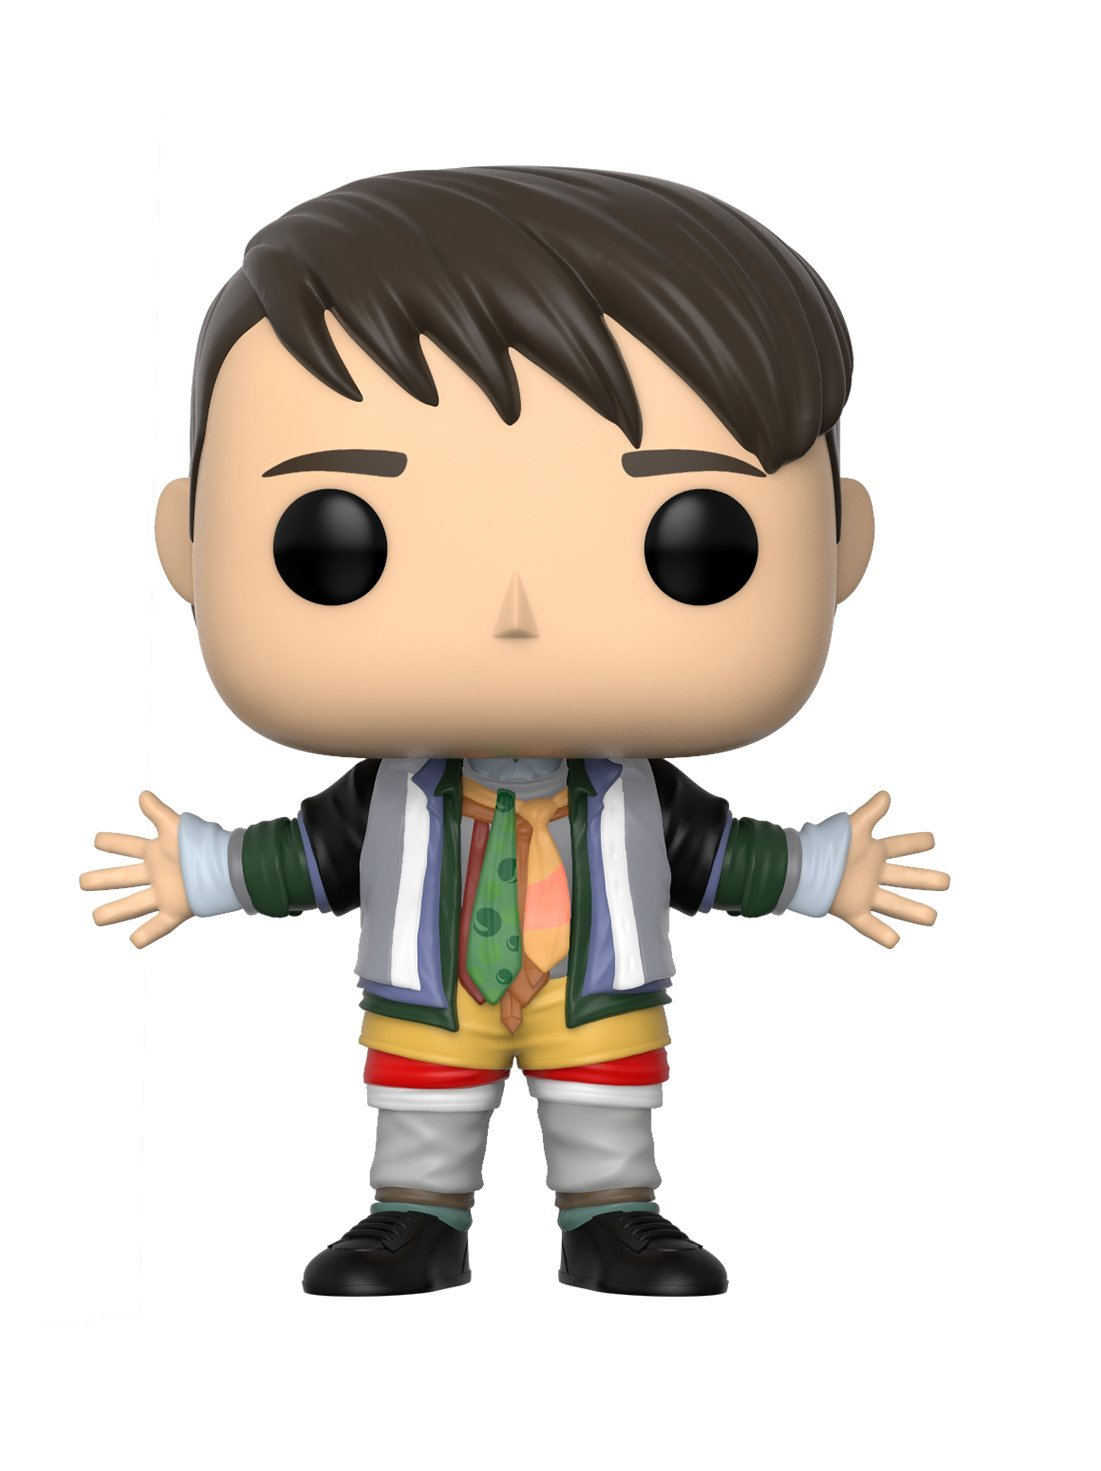 ویکالا · خرید  اصل اورجینال · خرید از آمازون · Funko Pop Television: Friends - Joey in Chandler's Clothes Collectible Figure, Multicolor wekala · ویکالا